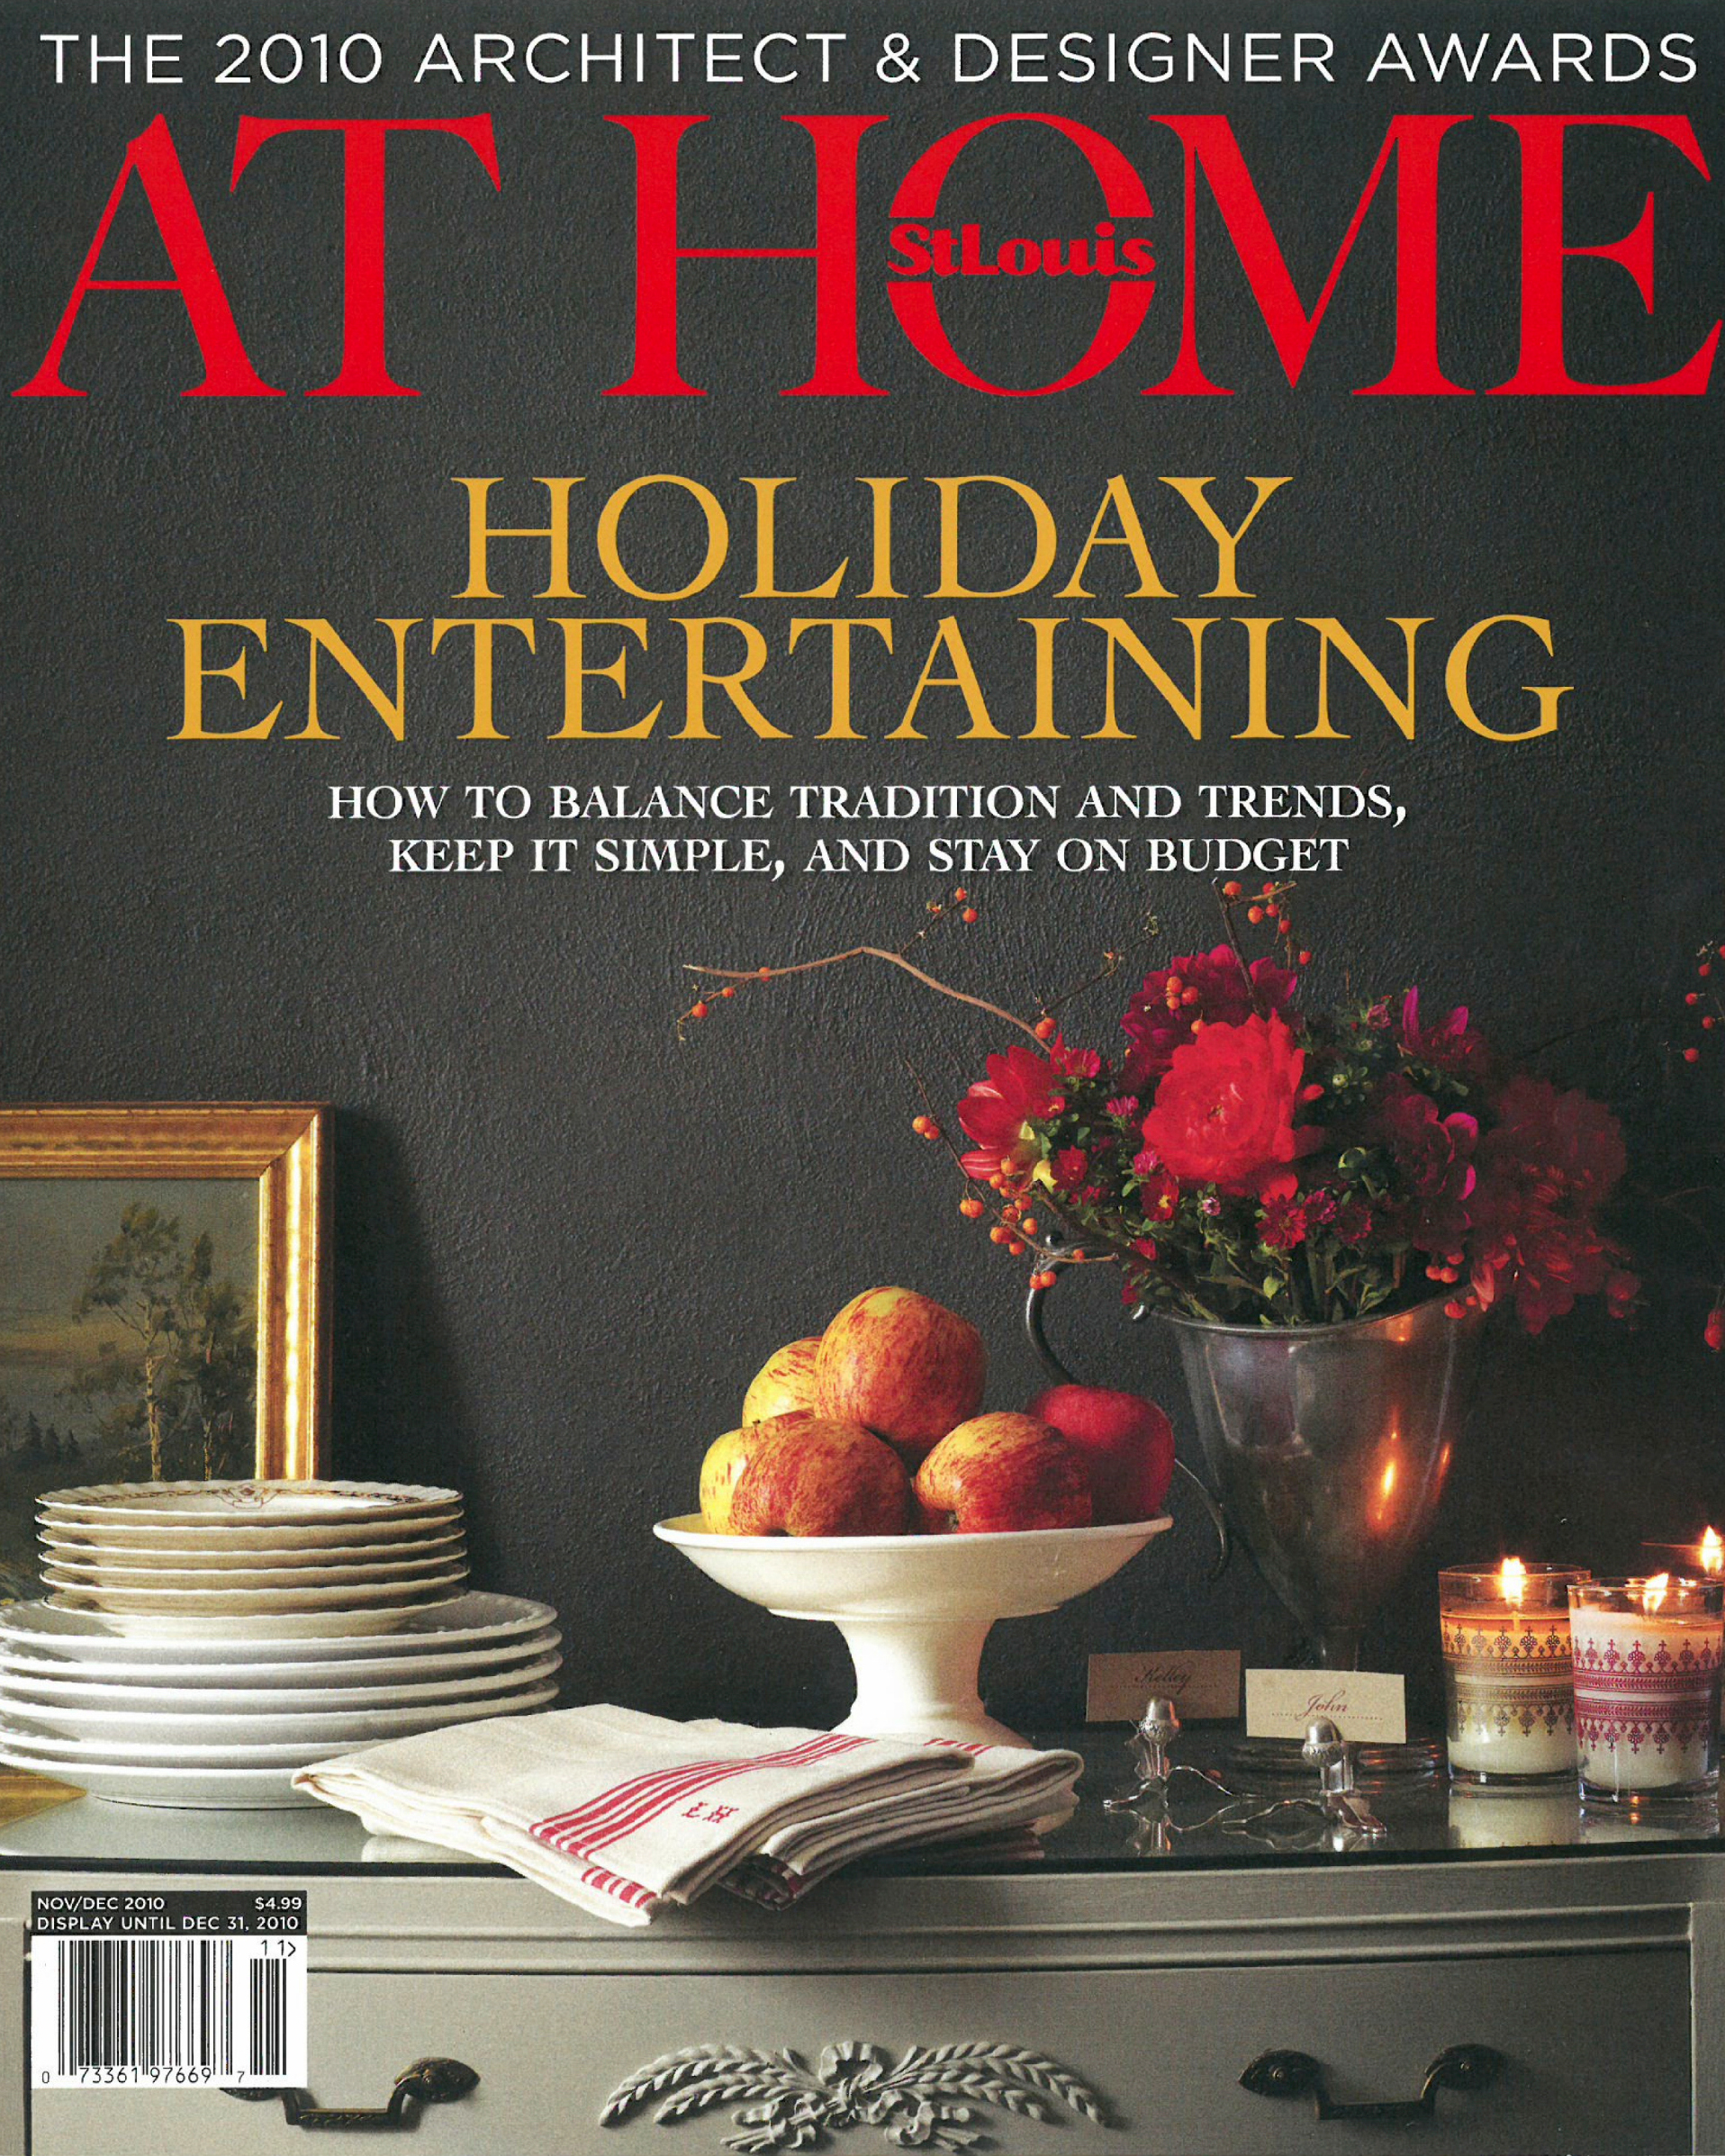 AT HOME // Winter 2010 - ADA Awards Feature 2010